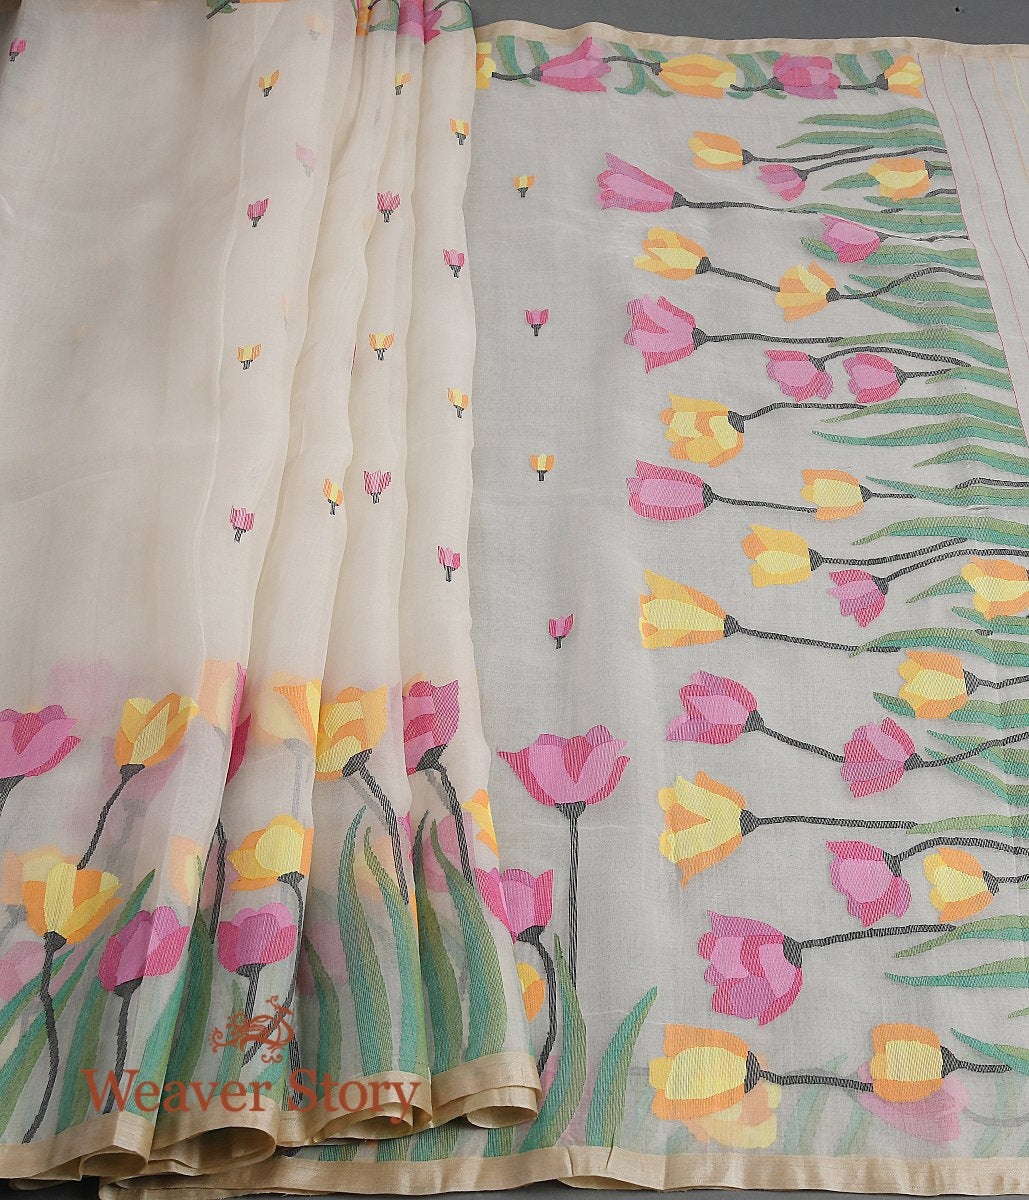 Handwoven Offwhite Muslin Jamdani Saree with Tulips